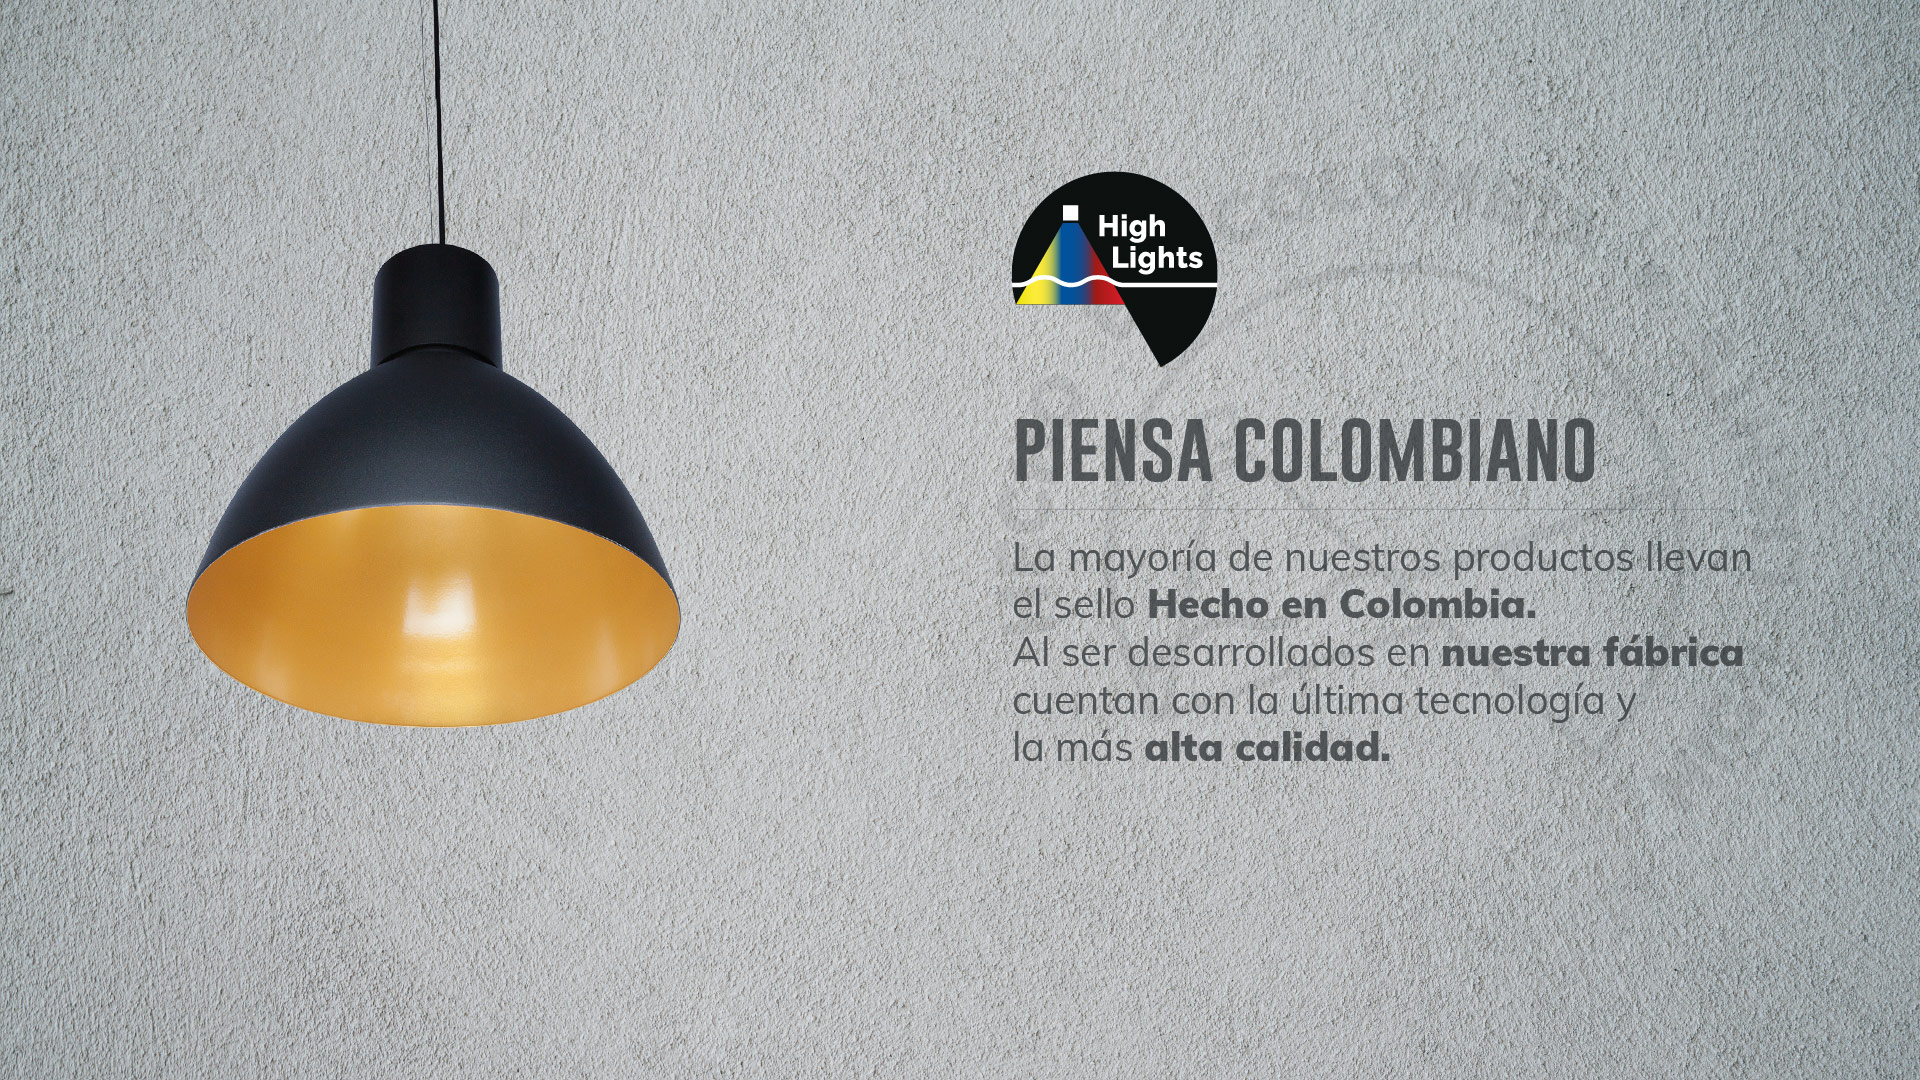 high-lights-piensa-colombiano